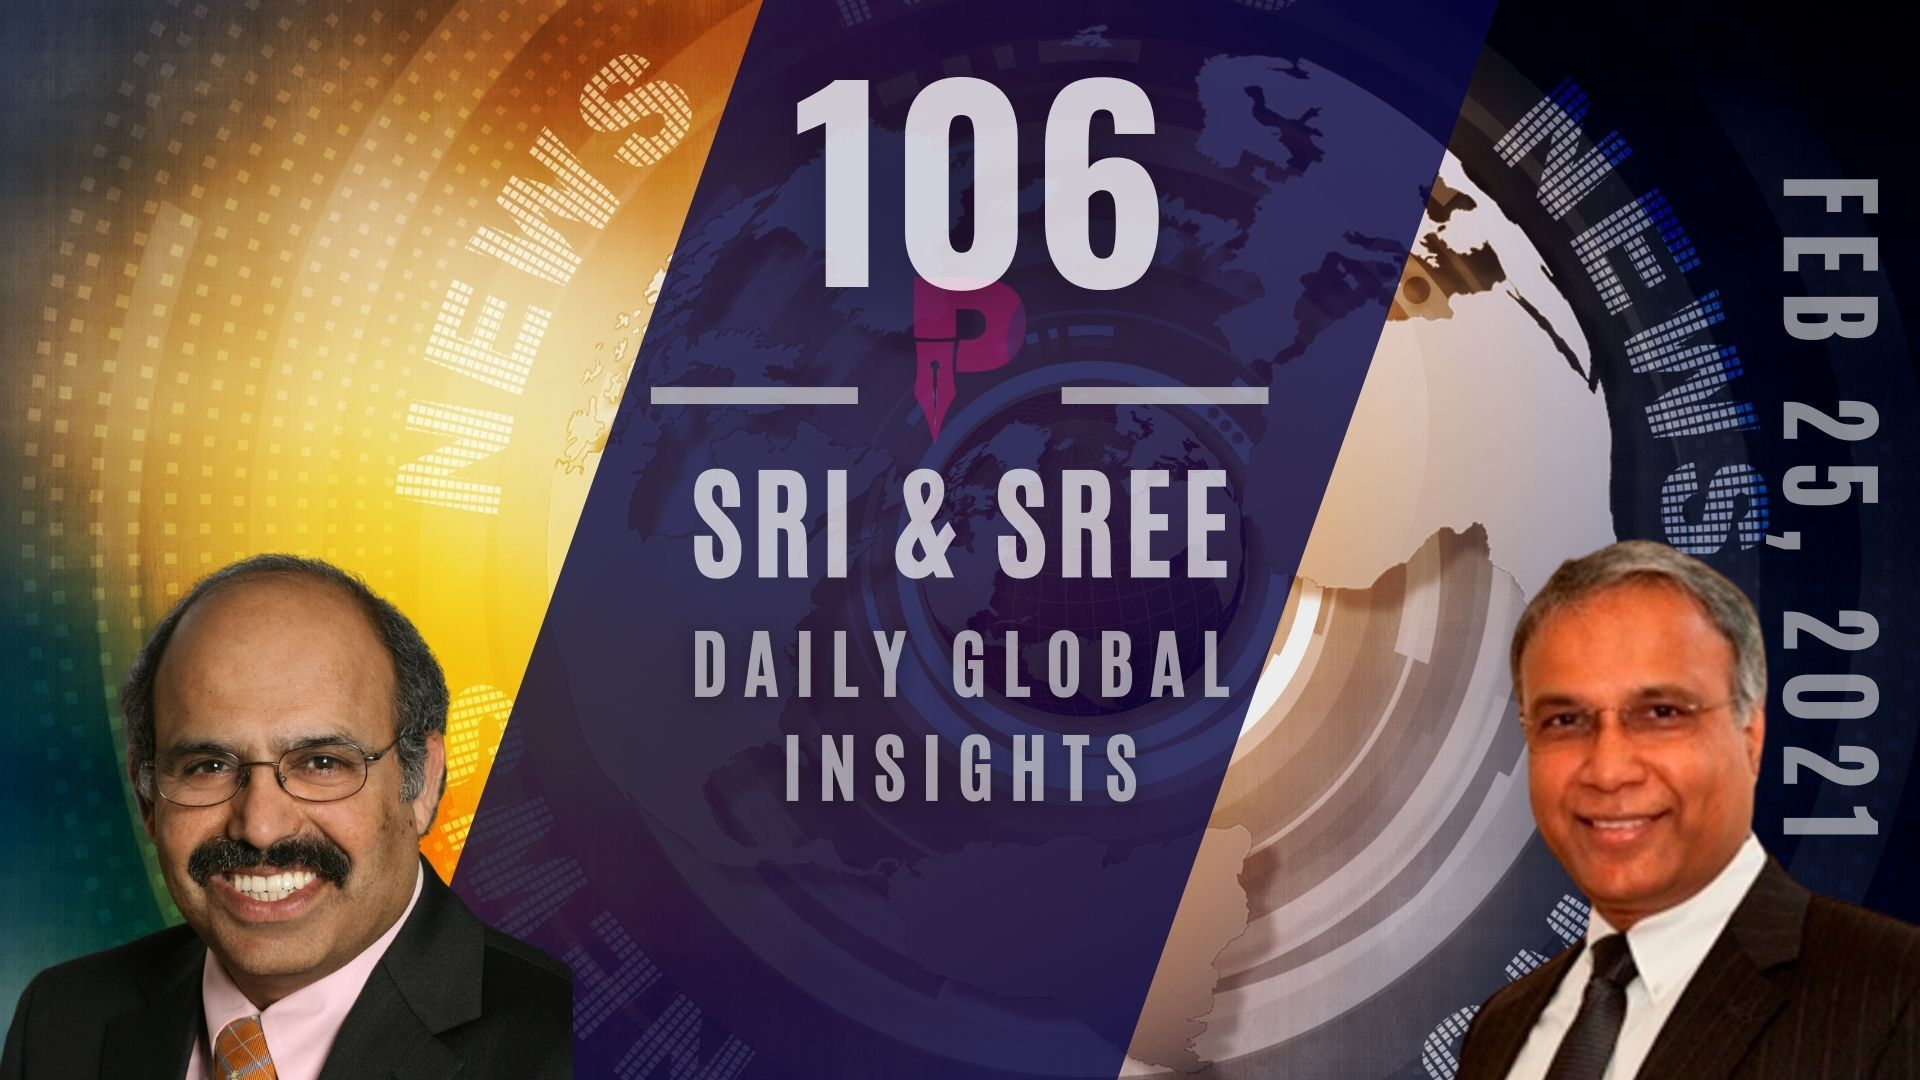 EP-106: Neera Tandon still not confirmed, WH stands firm. 9 of 23 done. India's $130B Defence budget draws suppliers from Worldwide. All this & more!